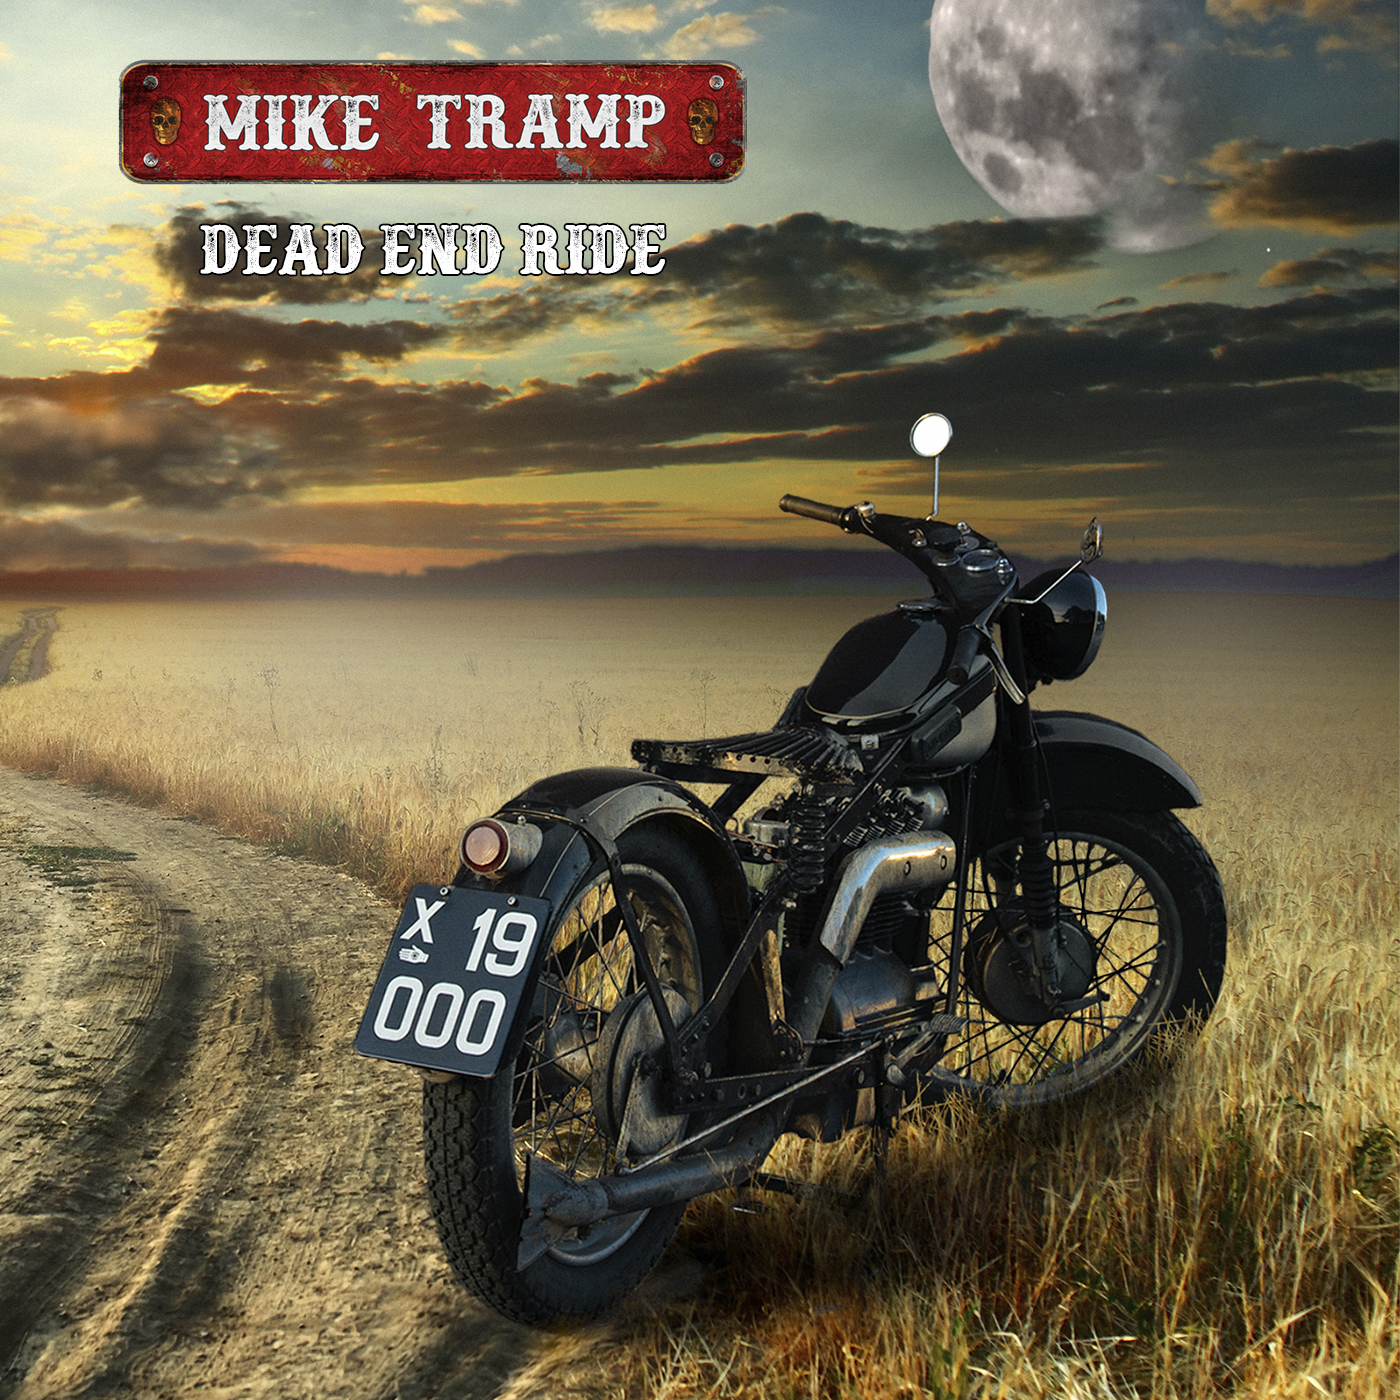 Mike Tramp – Dead End Ride (single)